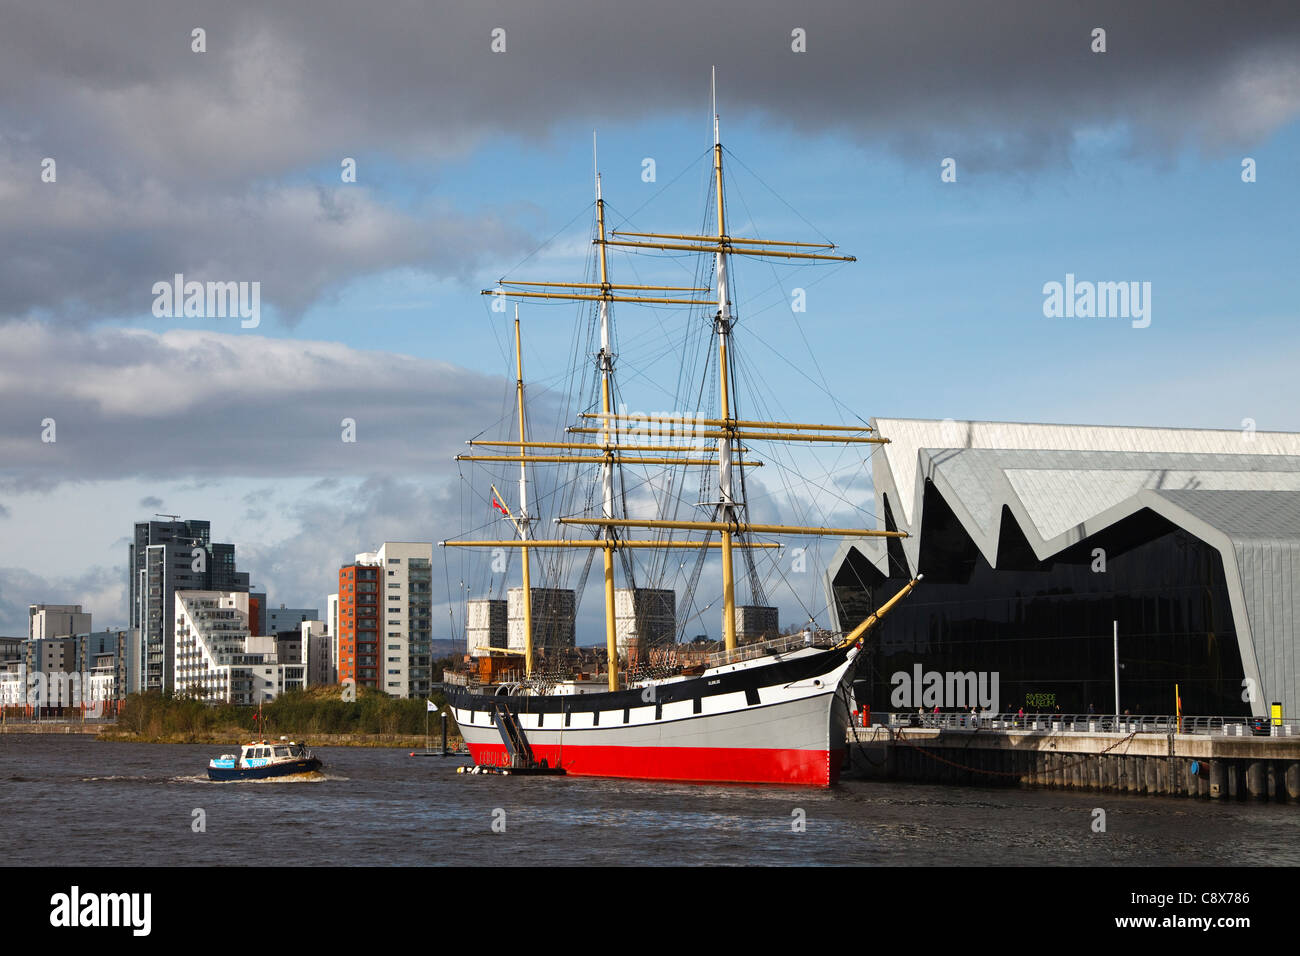 Riverside Museum with the tall ship 'Glenlea' on the River Clyde, at Partick, Glasgow, with the Govan Ferry - Stock Image